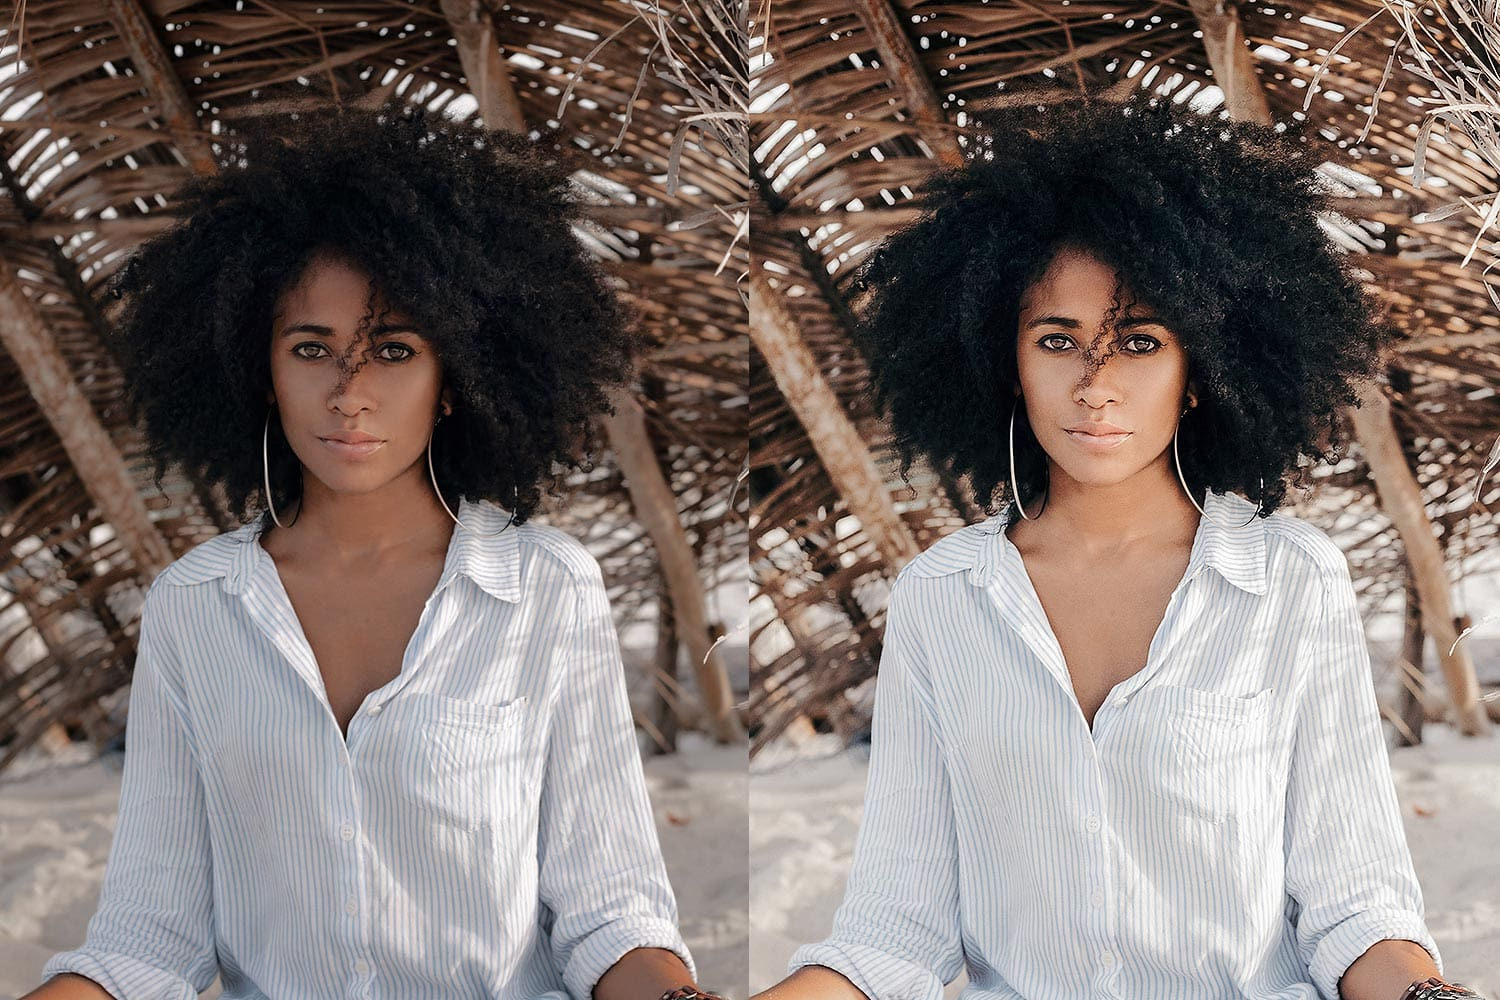 Beautiful-Lightroom-Presets-and-Profiles-Beach-Girl-Portrait-Before-and-After-Presetpro.com